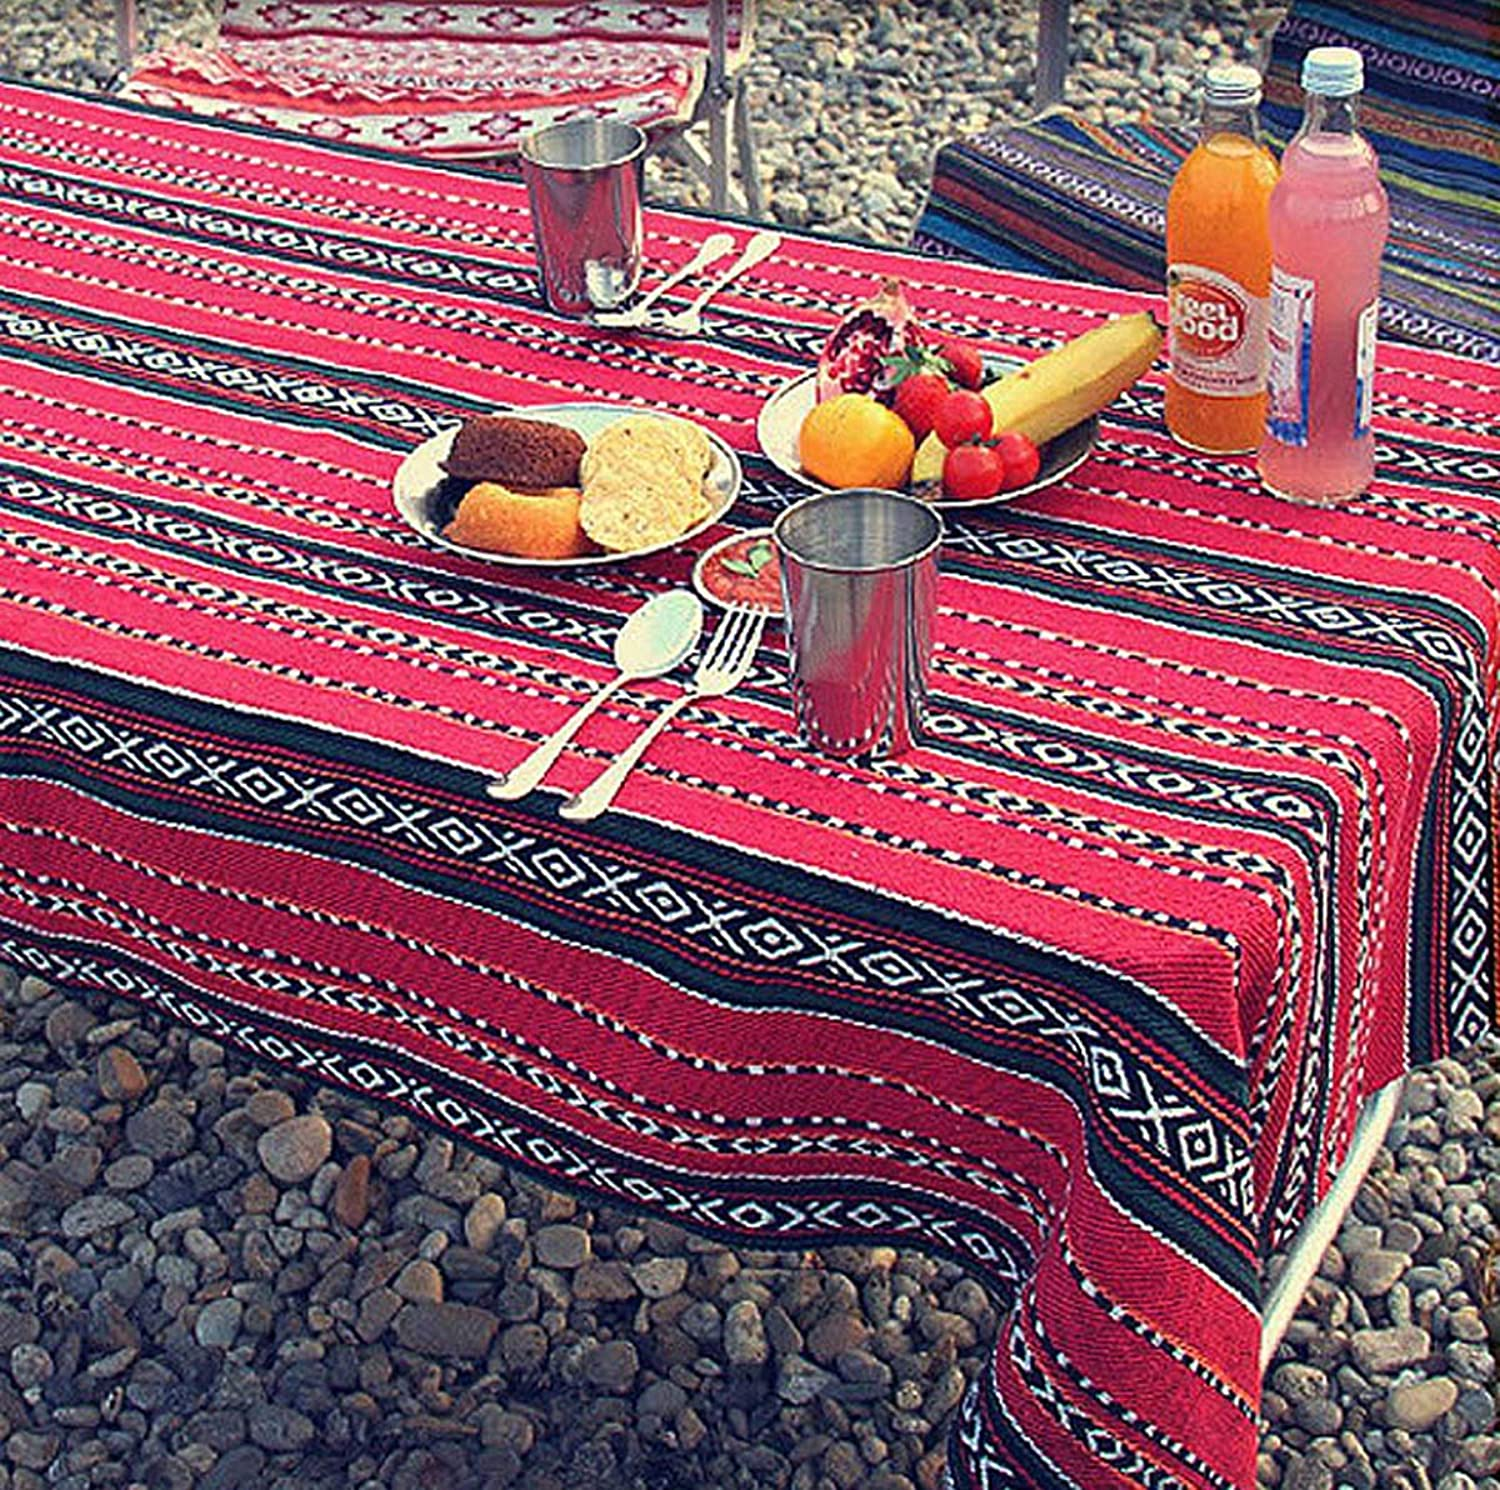 Outdoor Picnic Blanket Mat, Waterproof Padding, Foldable Table Cloth for Families, Outside Beach Blankets for Park, Camping, Yard, Lawn, Sand